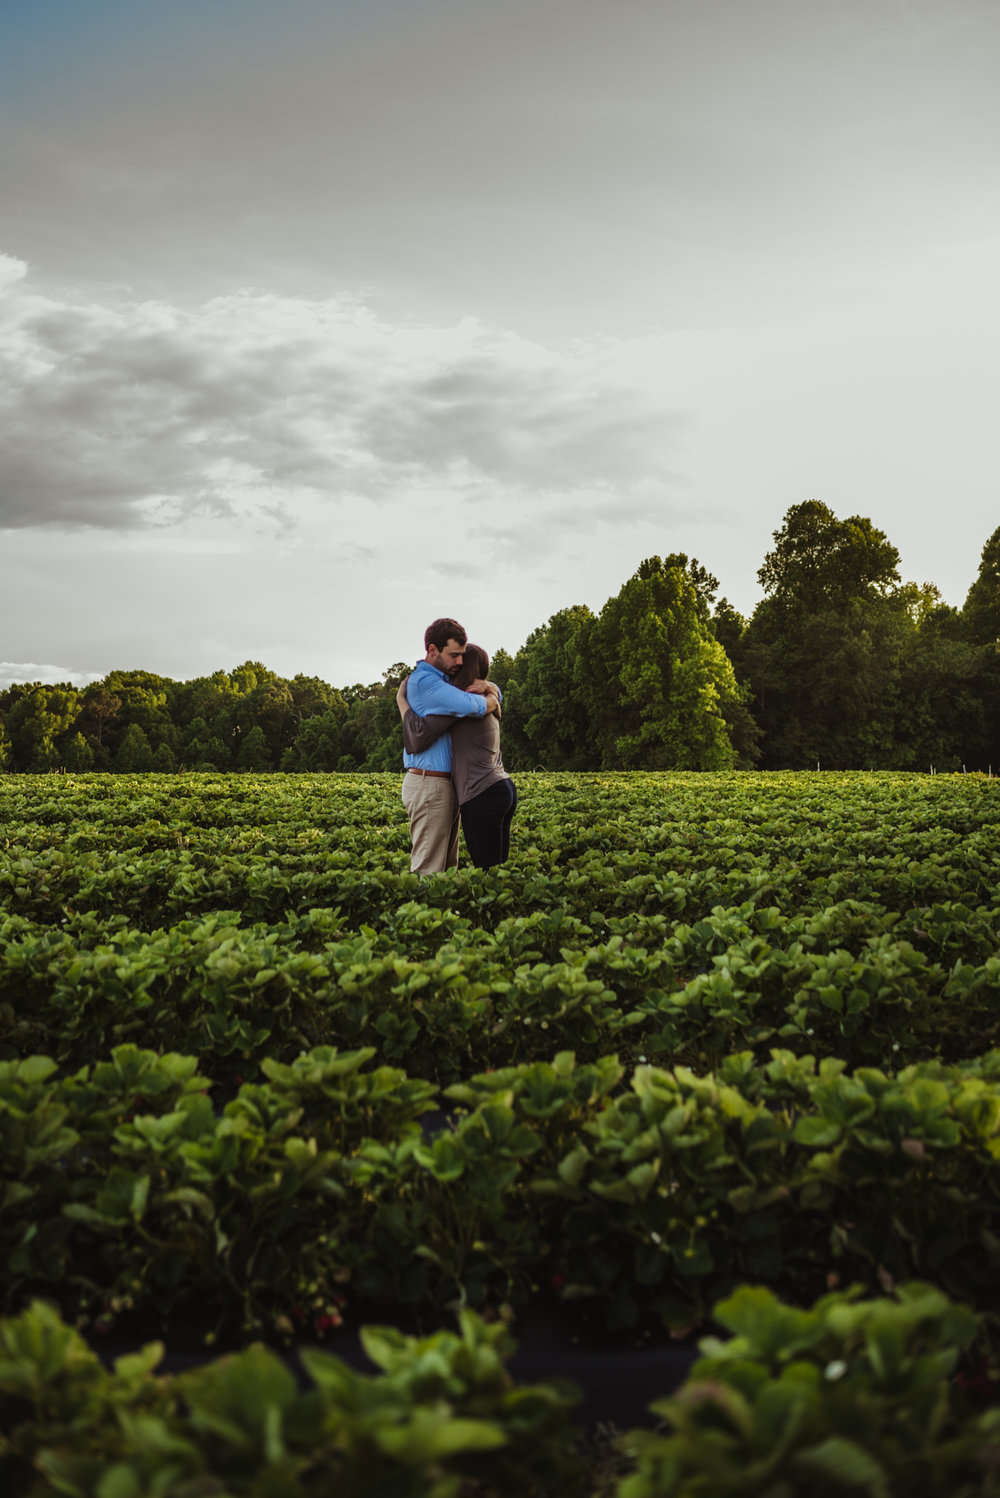 The bride and groom to be hug each other tight in the strawberry patch for their engagement pictures with Rose Trail Images at their family farm in Benson, North Carolina.